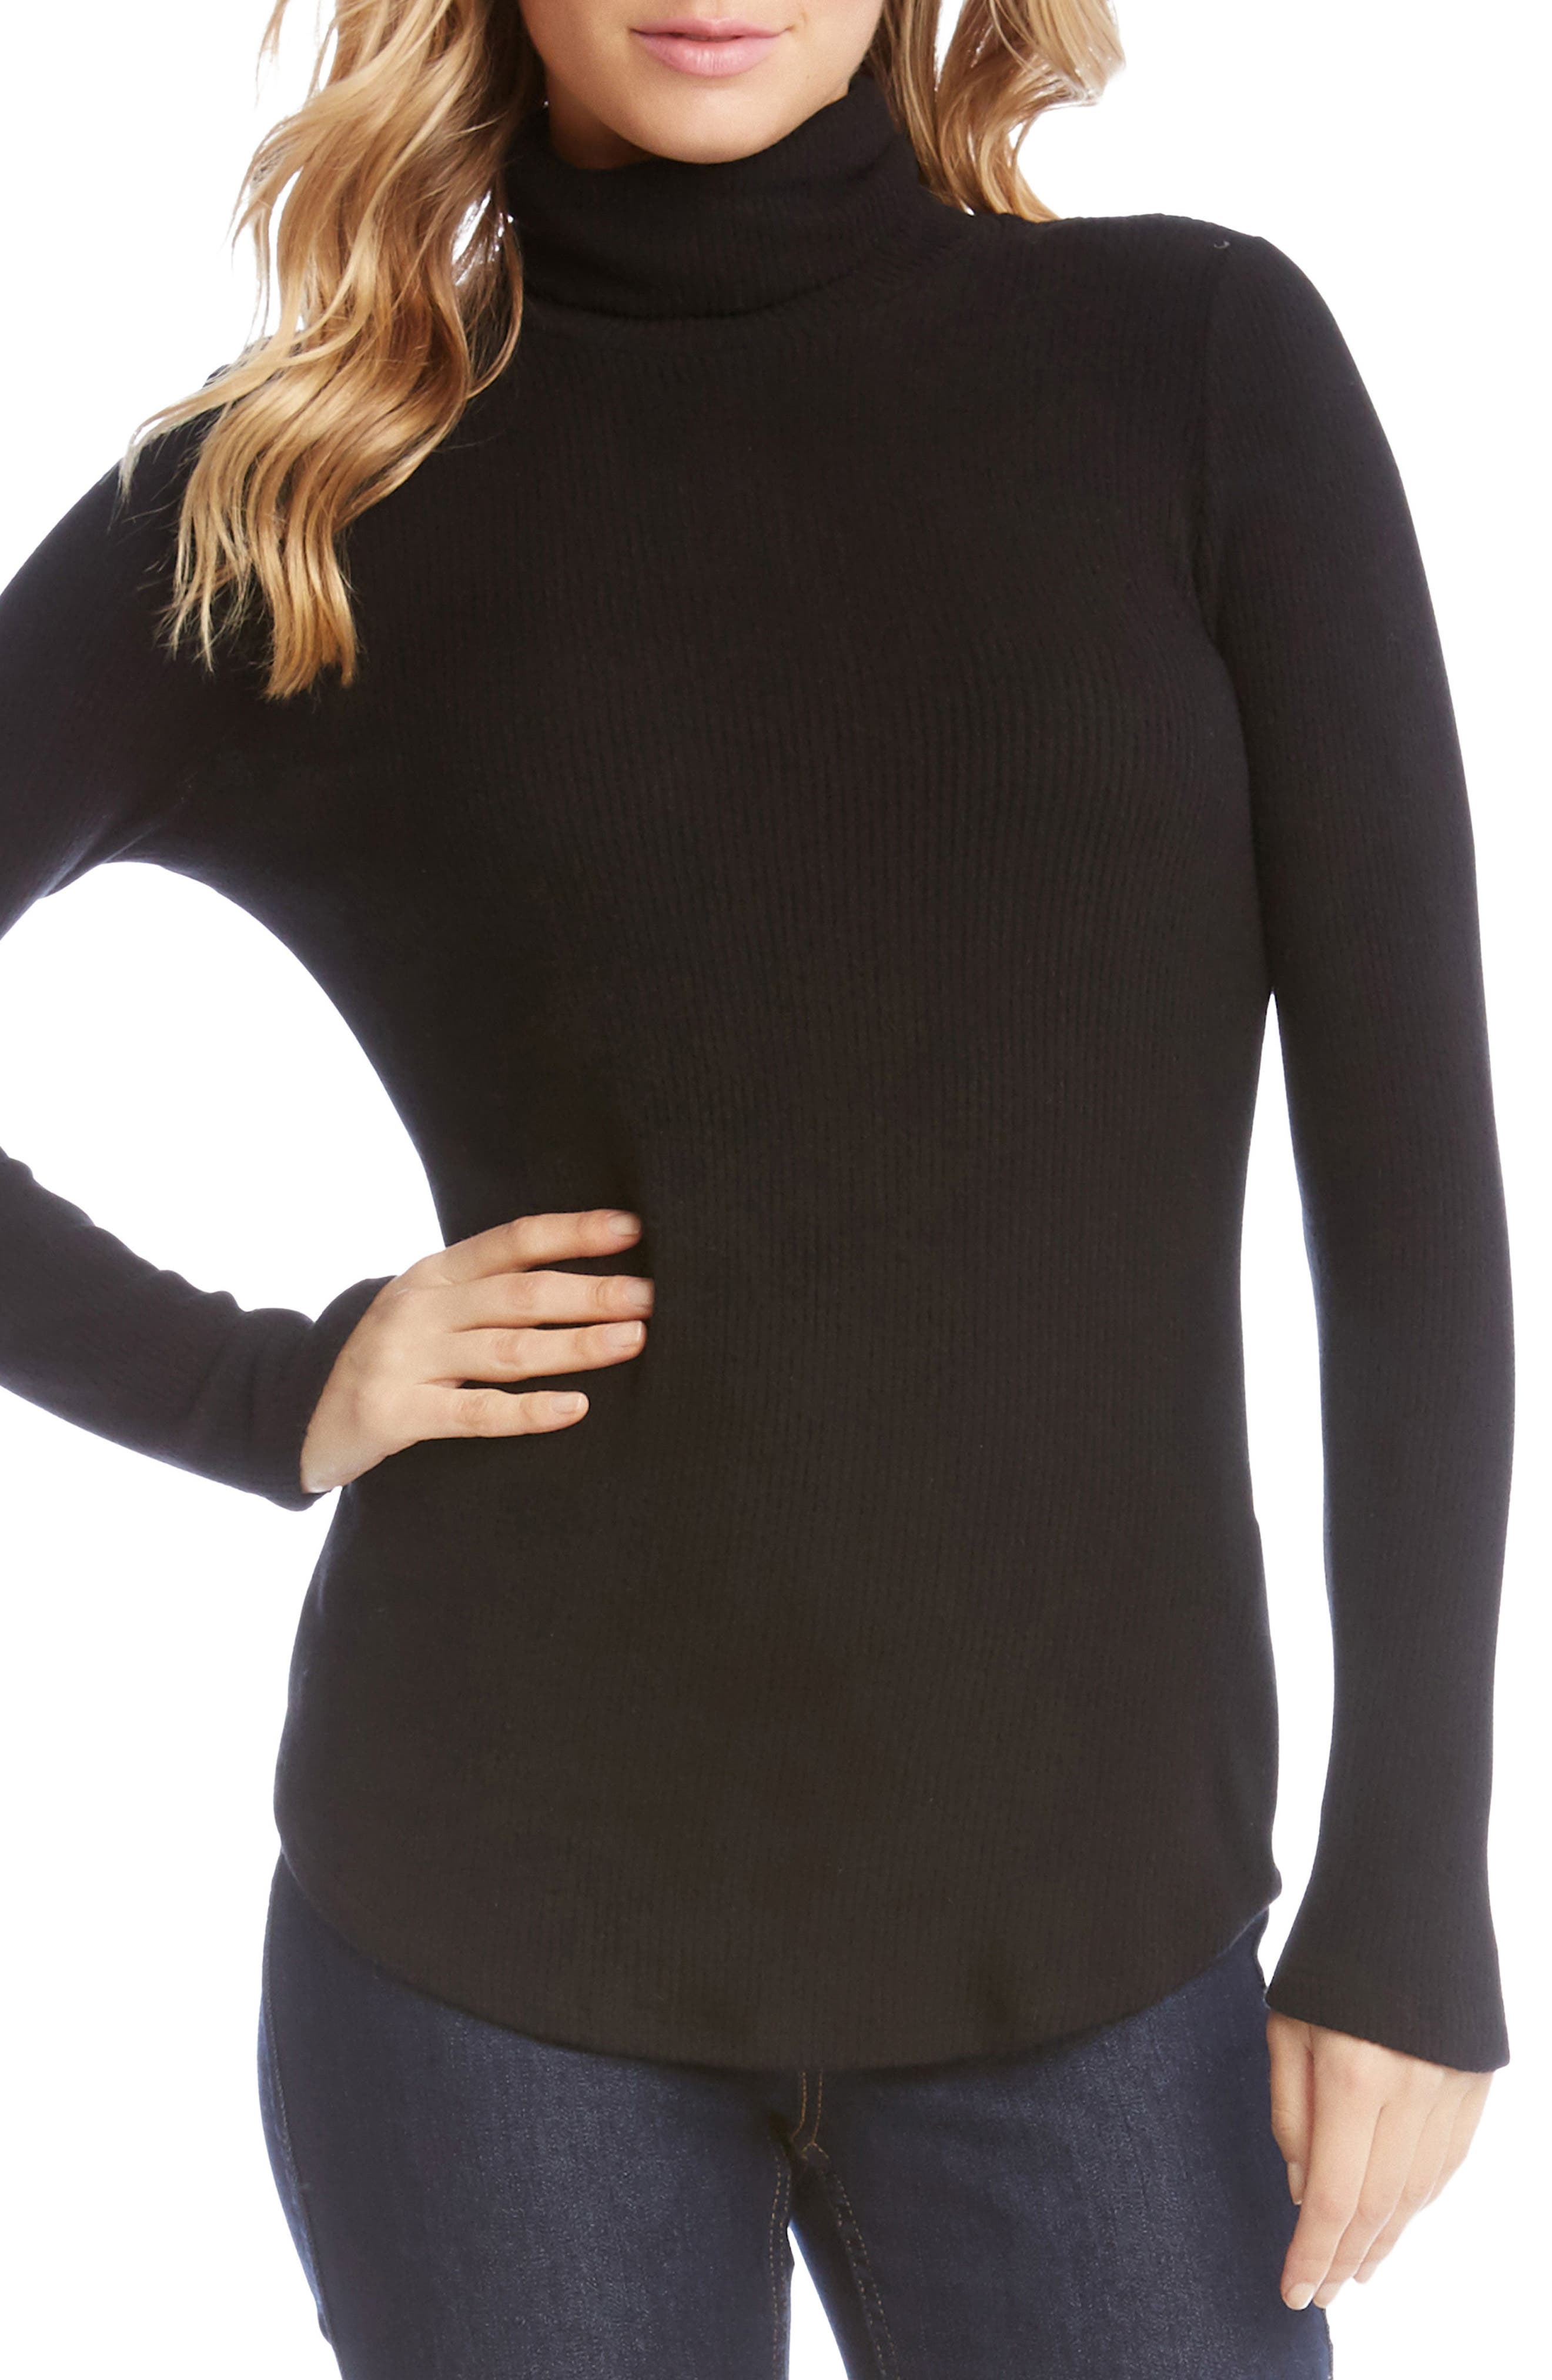 Alternate Image 1 Selected - Karen Kane Angled Sleeve Turtleneck